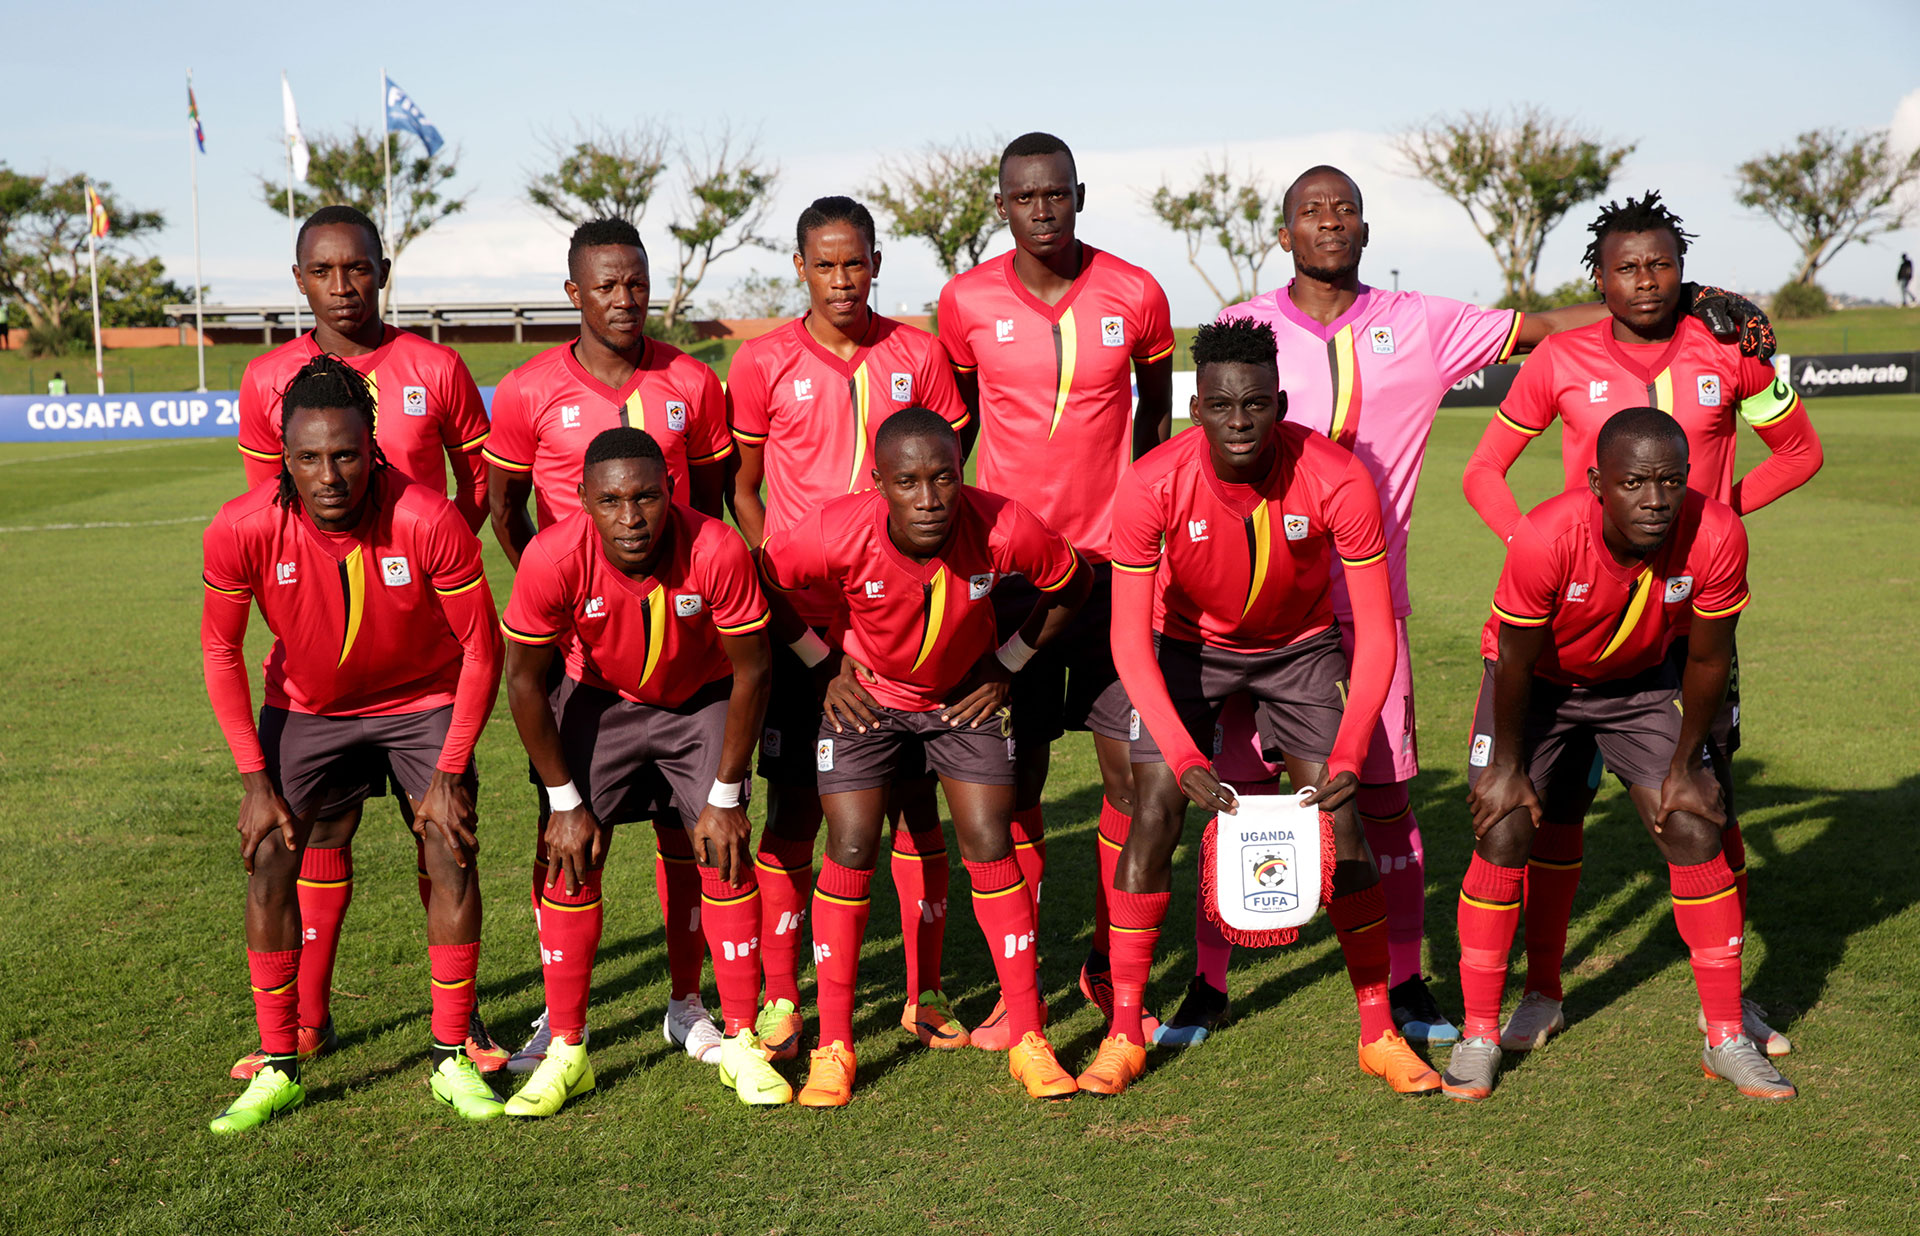 The Cranes fell short in two consecutive penalty shoot-outs.